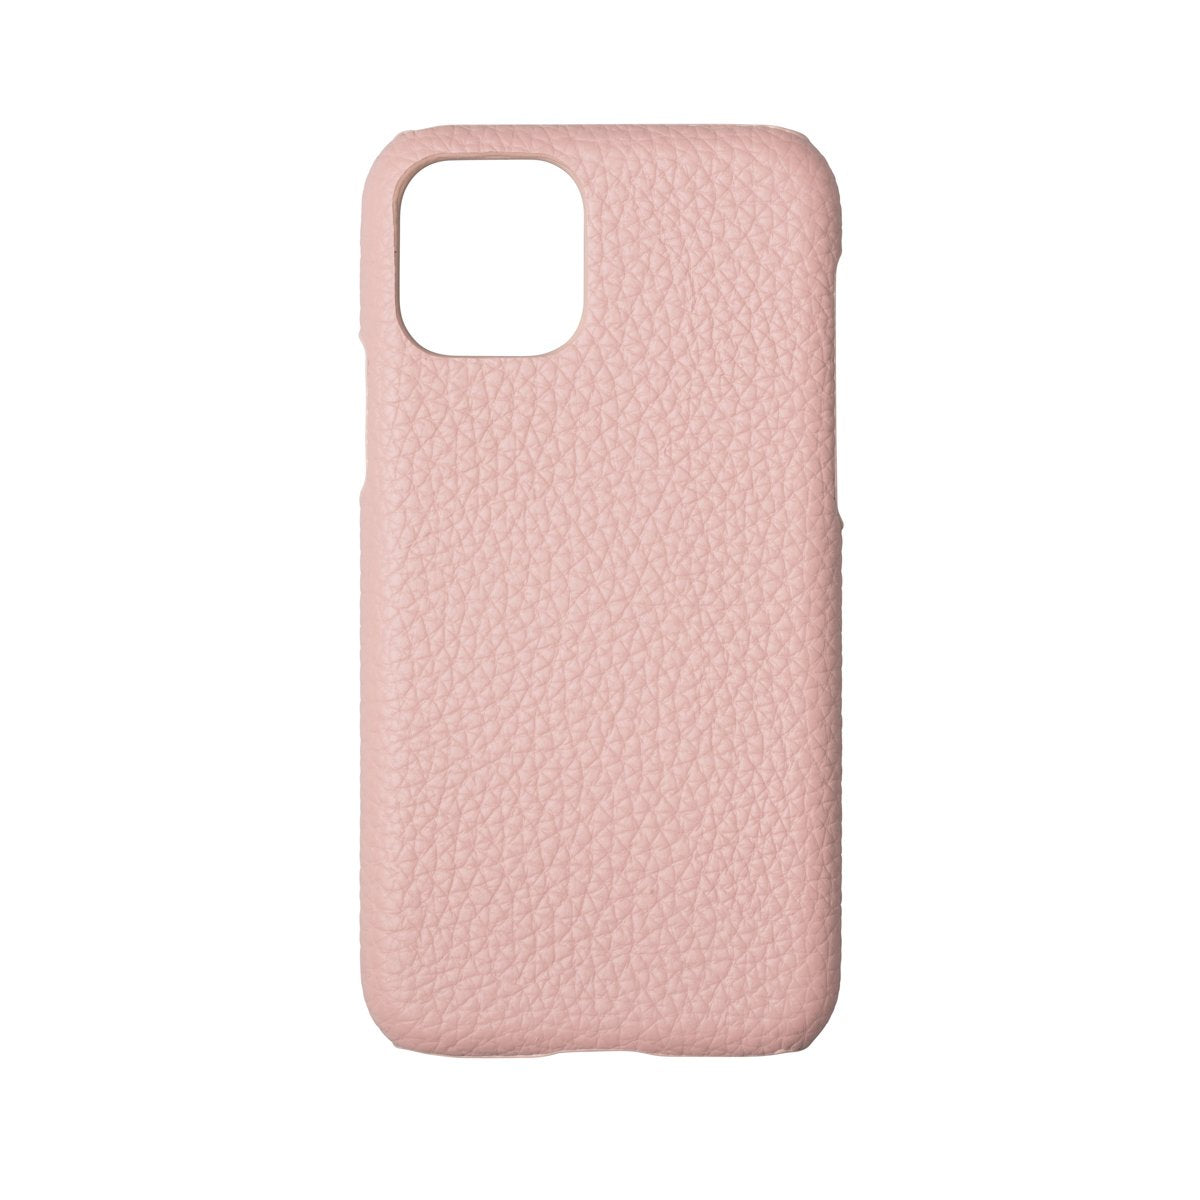 Blush Pink Phone Case (iPhone 11 Pro Max)